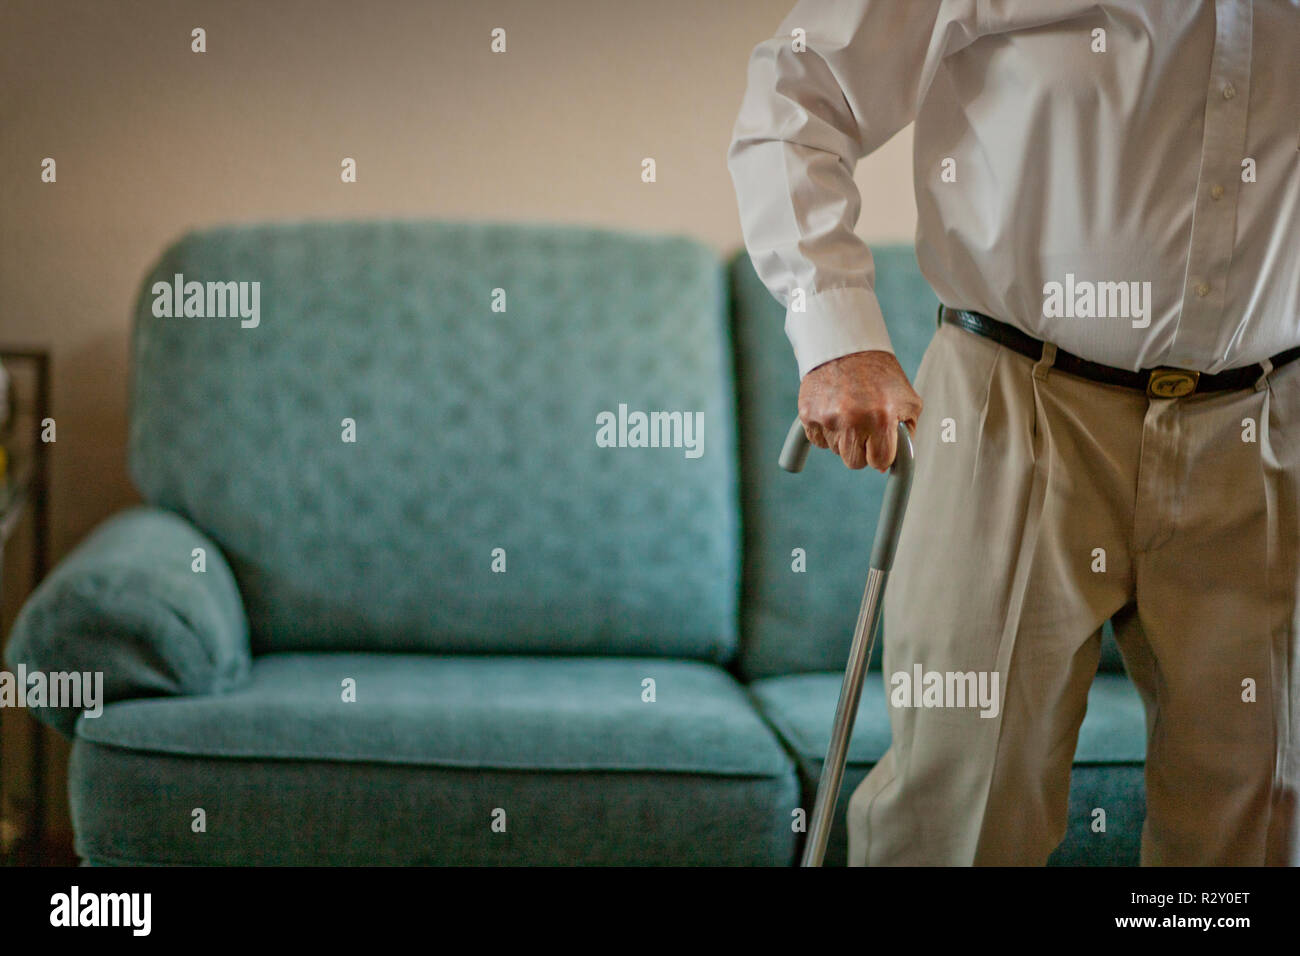 Elderly man stands up from a comfy couch with the help of his trusty walking stick. - Stock Image